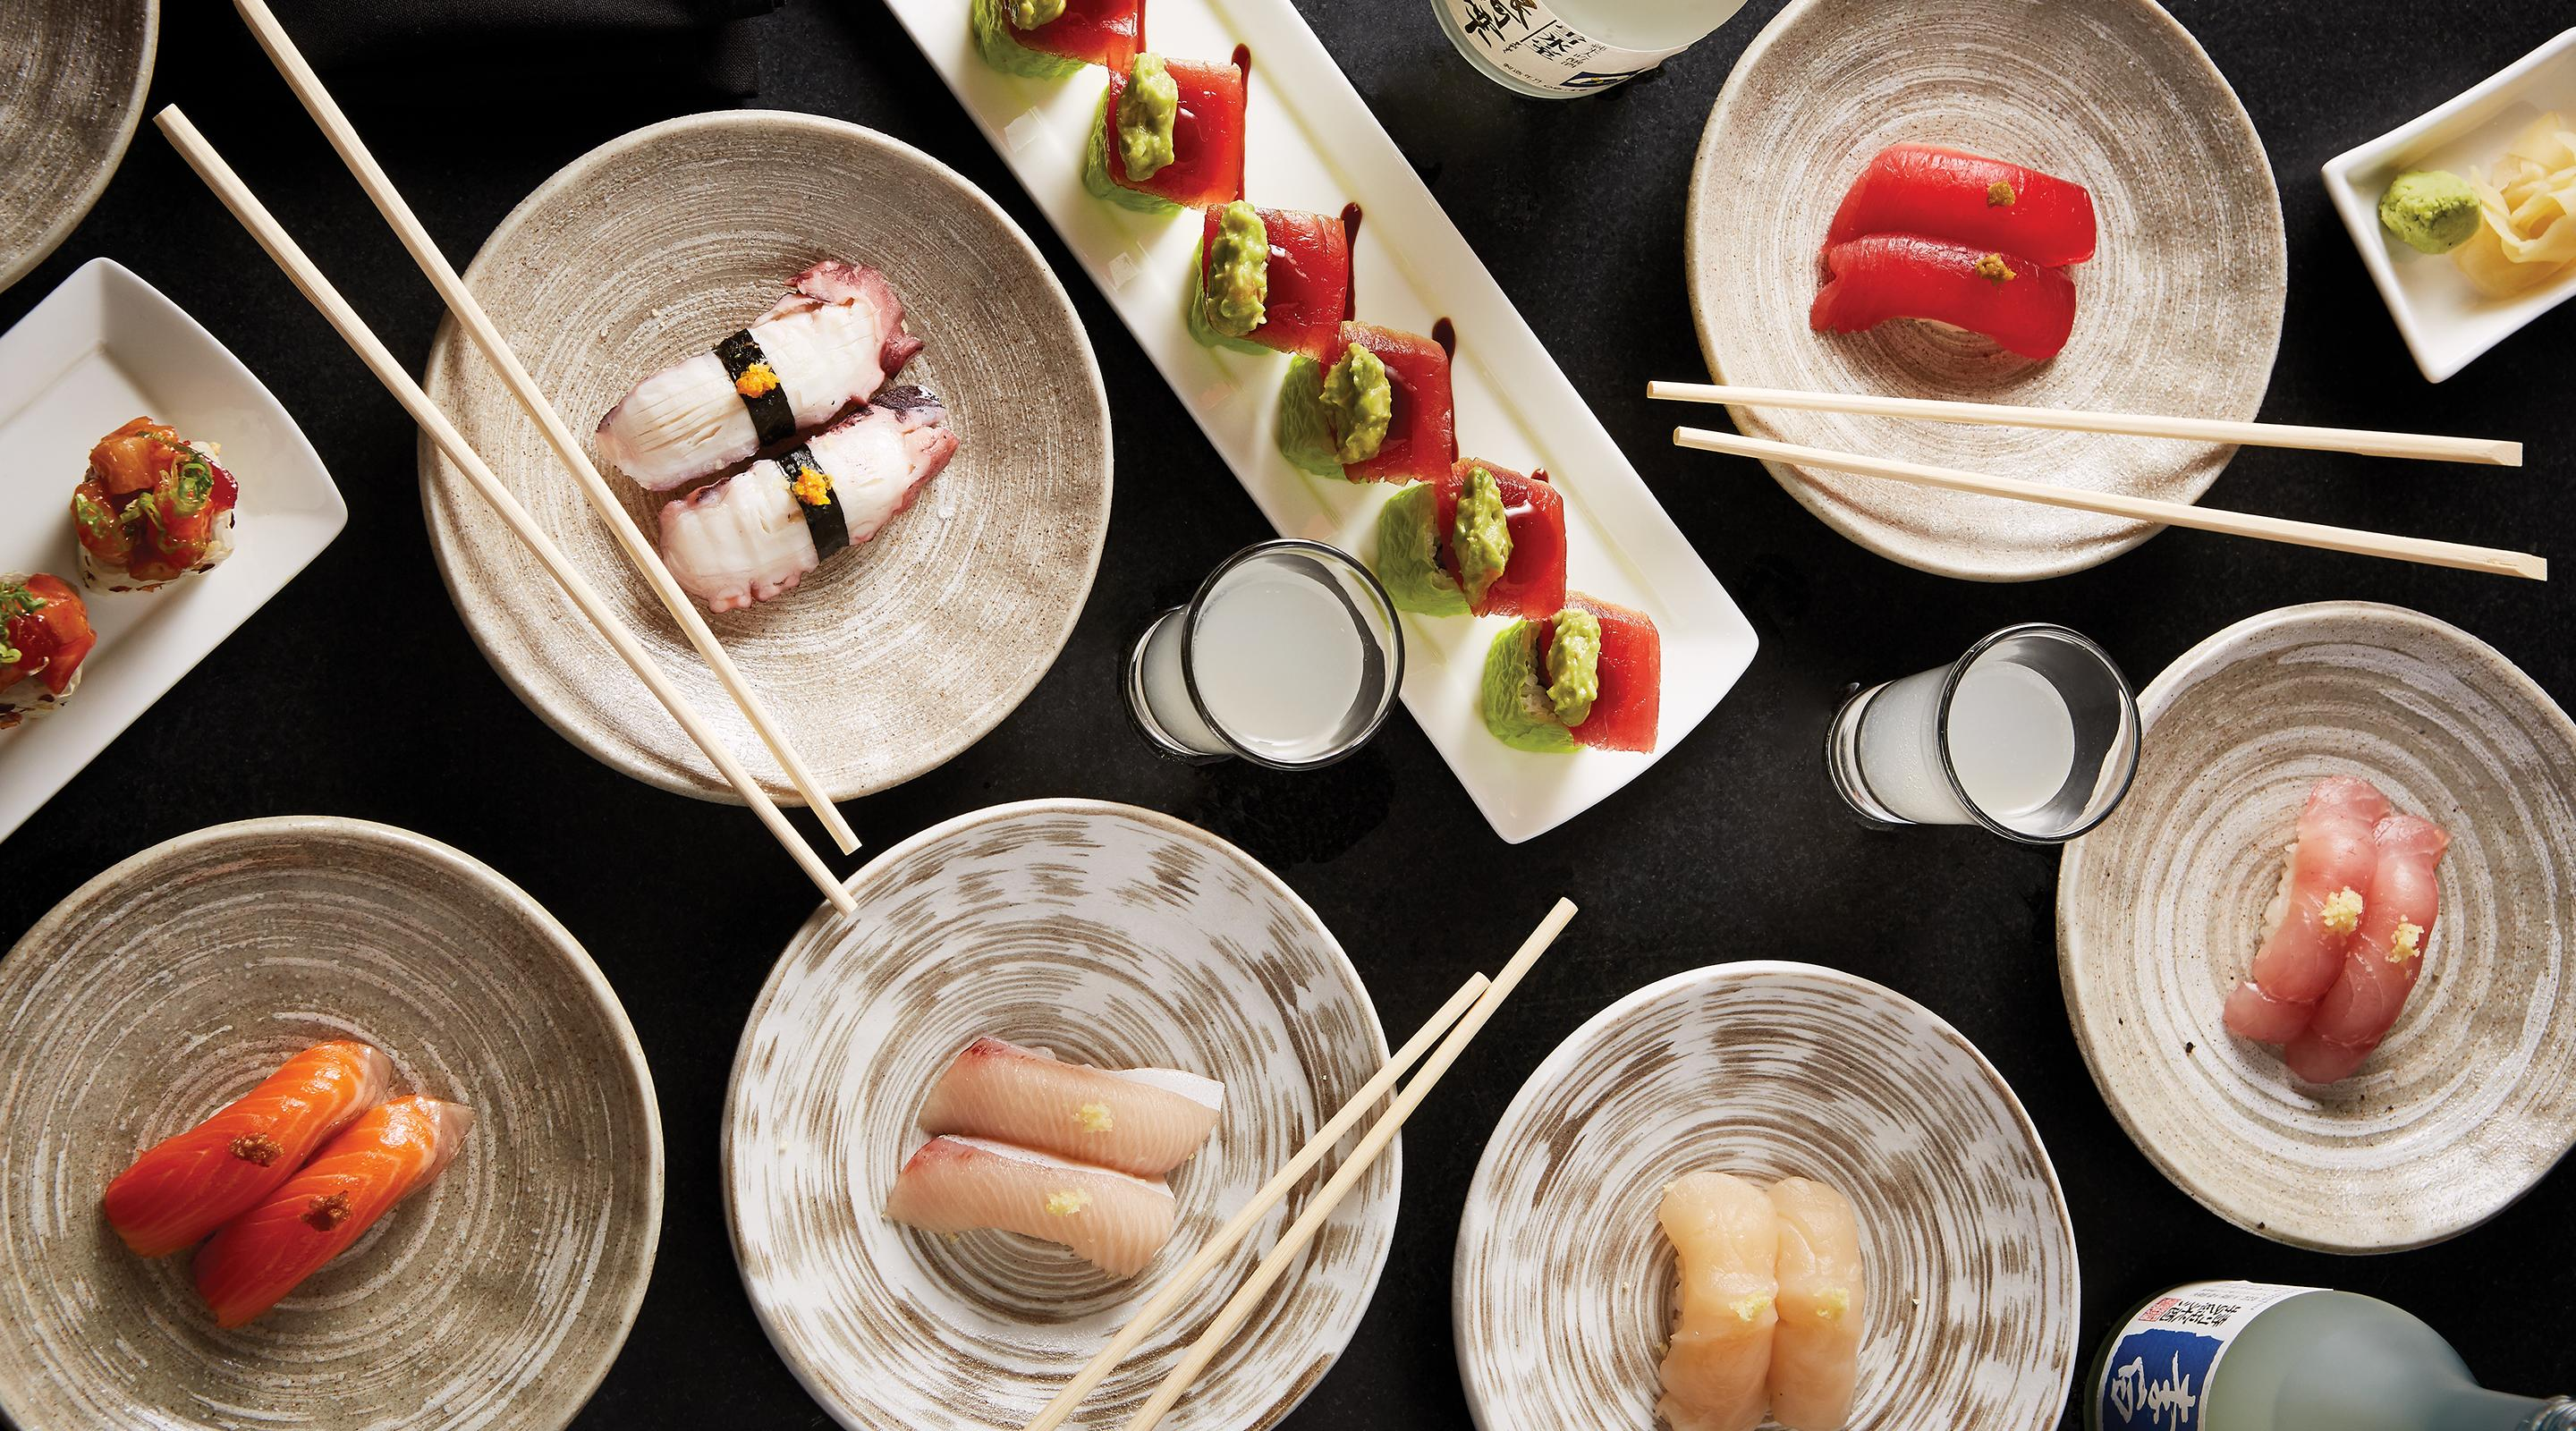 A tablescape of assorted pieces of sashimi and sushi.